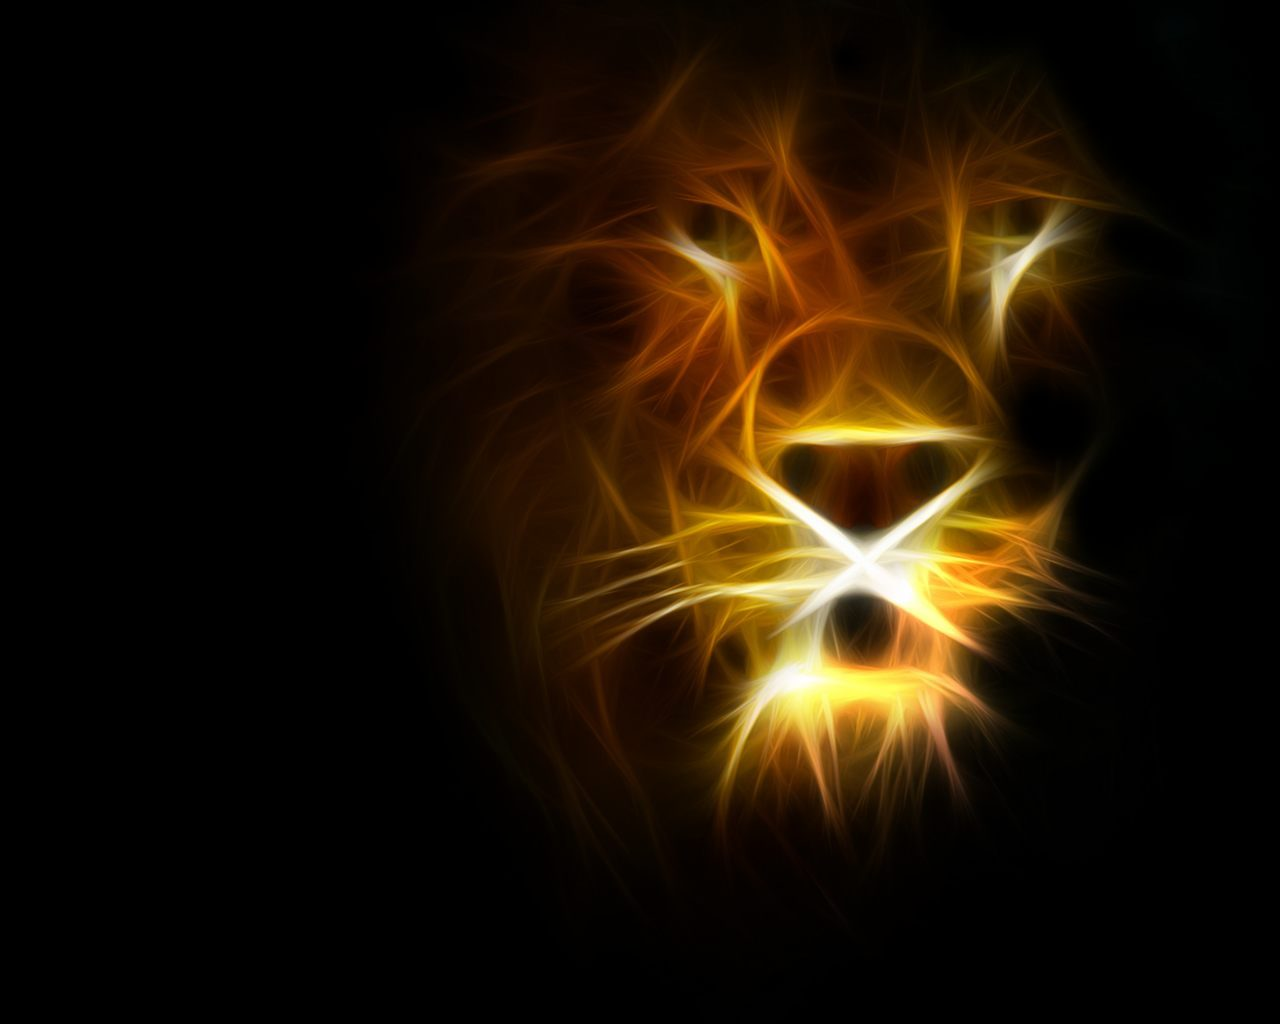 3d Fire Lion Wallpaper Set The Lion On Fire Feel Free To Share My